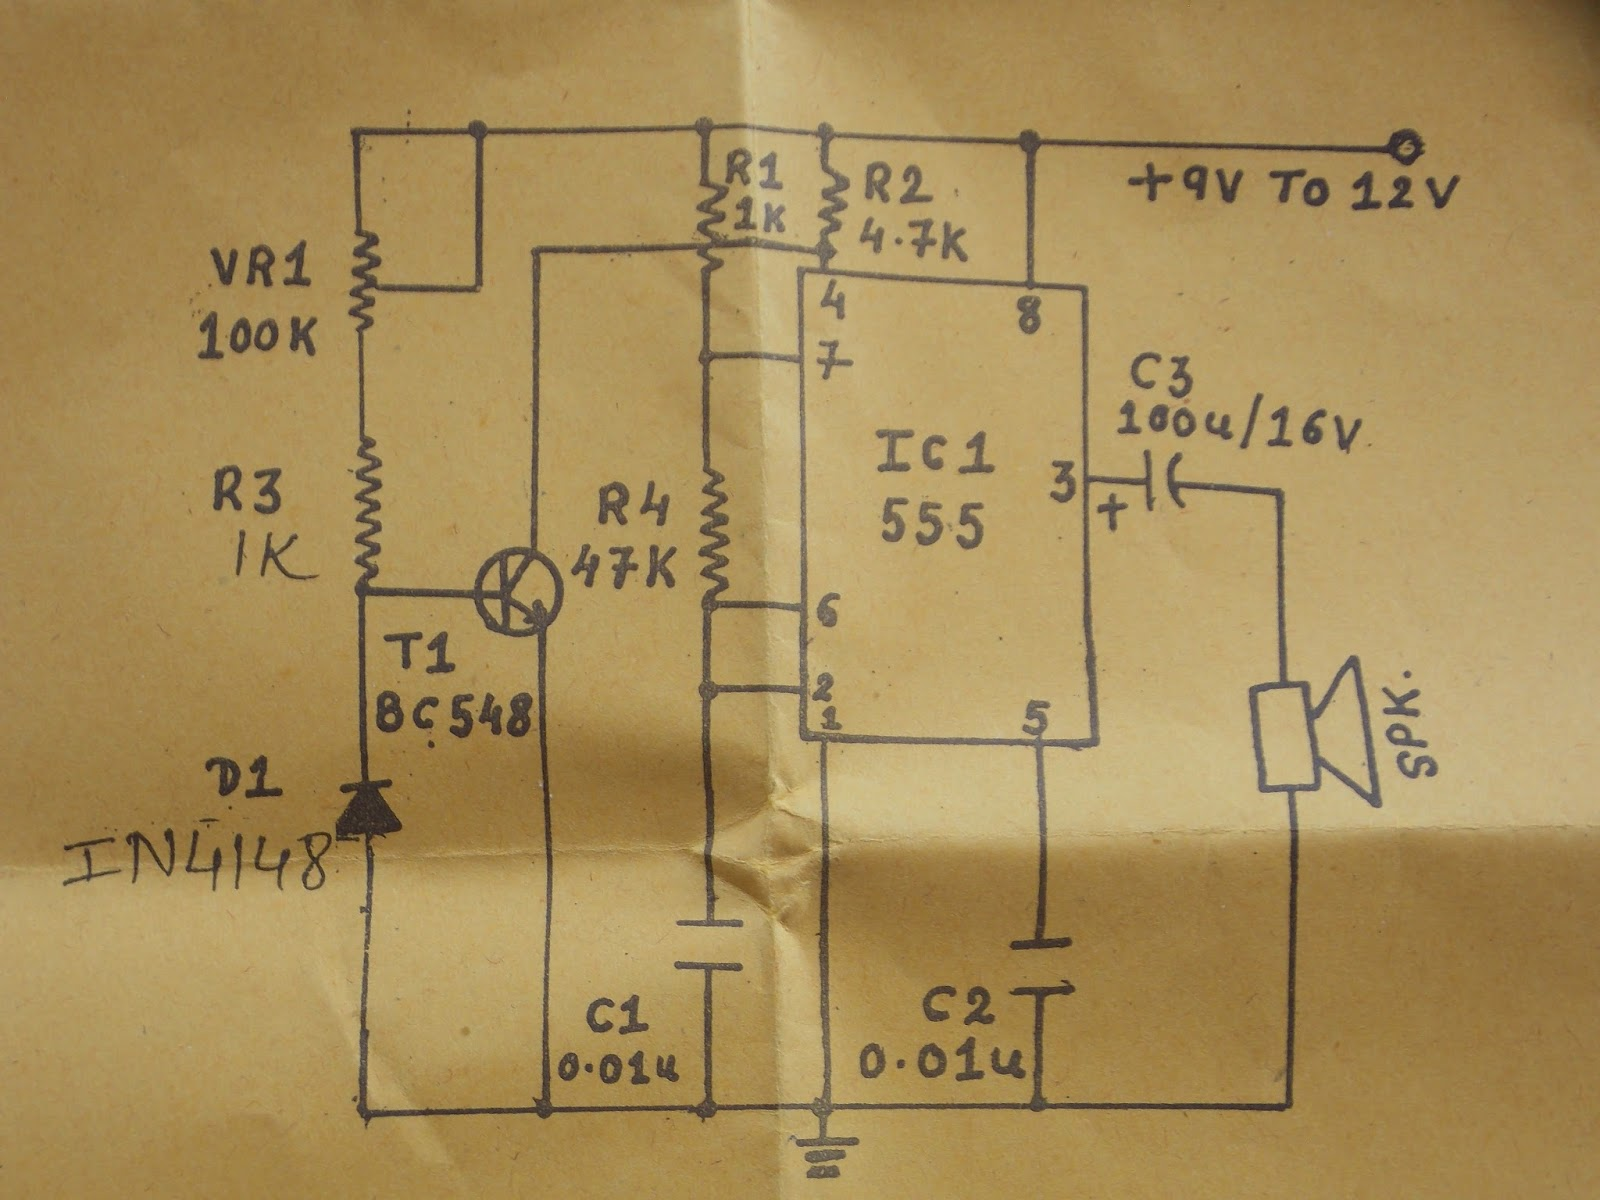 fire alarm schematic diagram 3 wire guitar pickup wiring block of circuit using lm341 library germanium diode